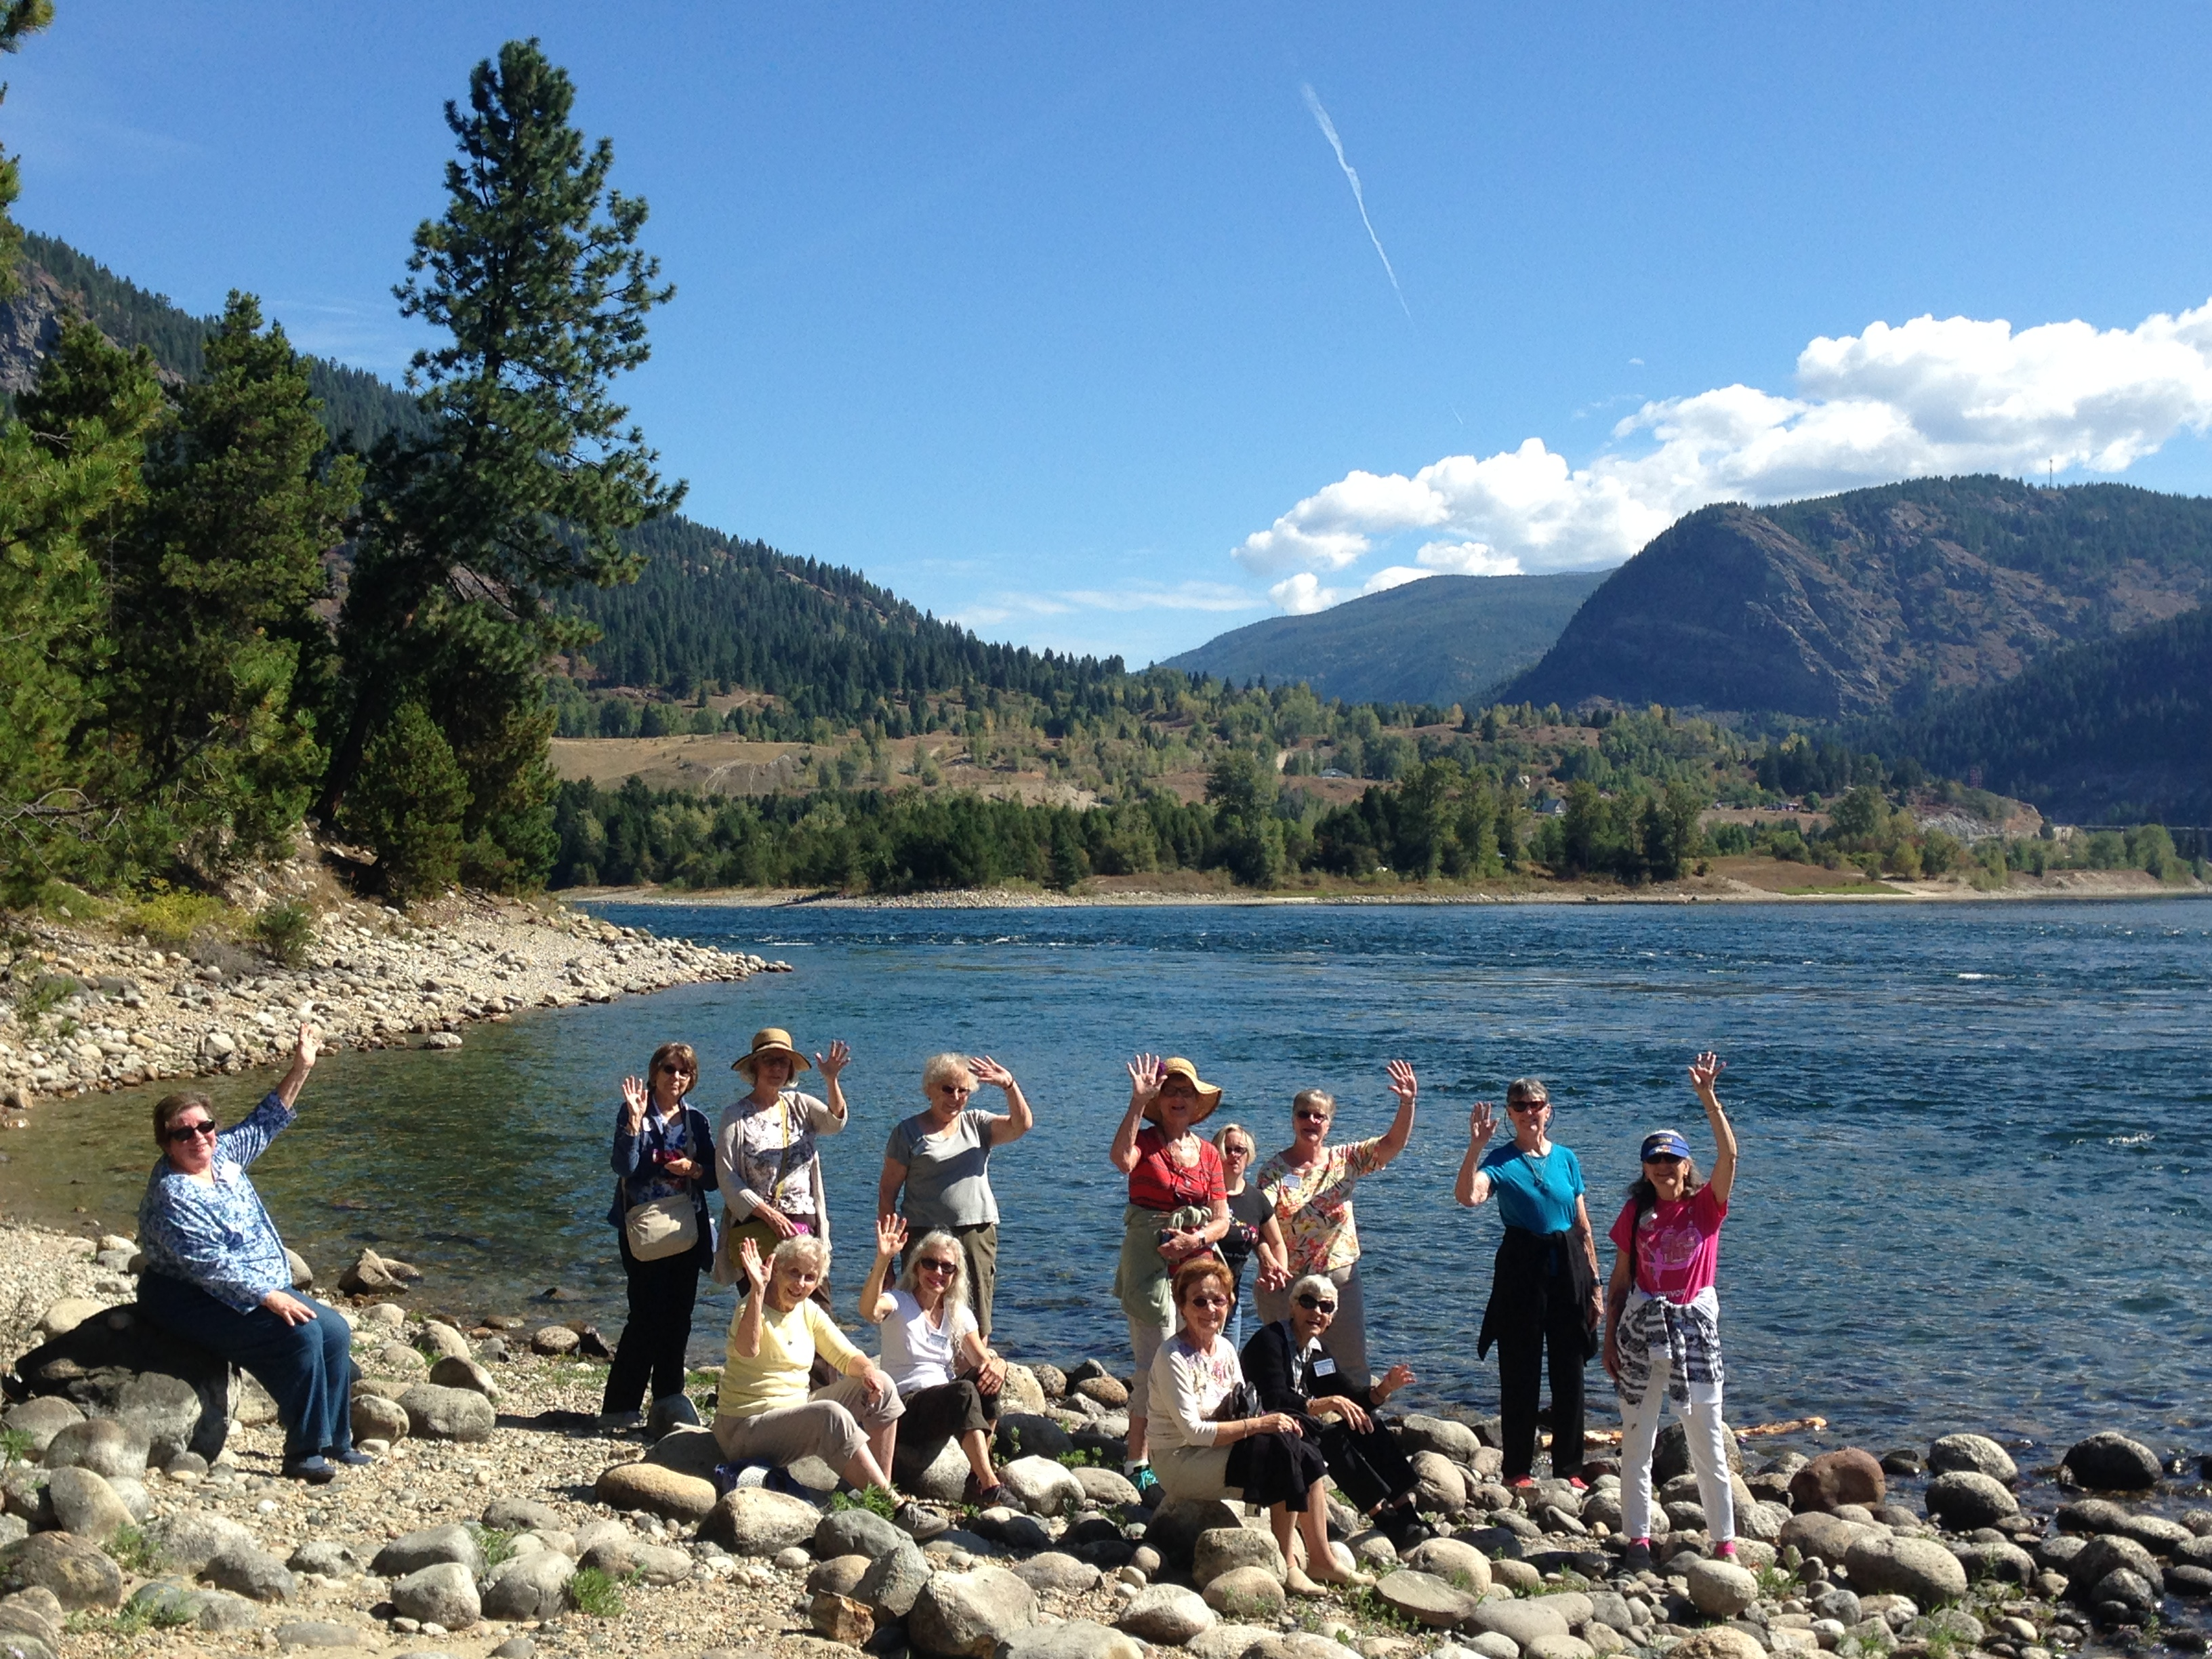 Sports Leisure travelers at the confluence of Columbia River & Kootenay River, Selkirk